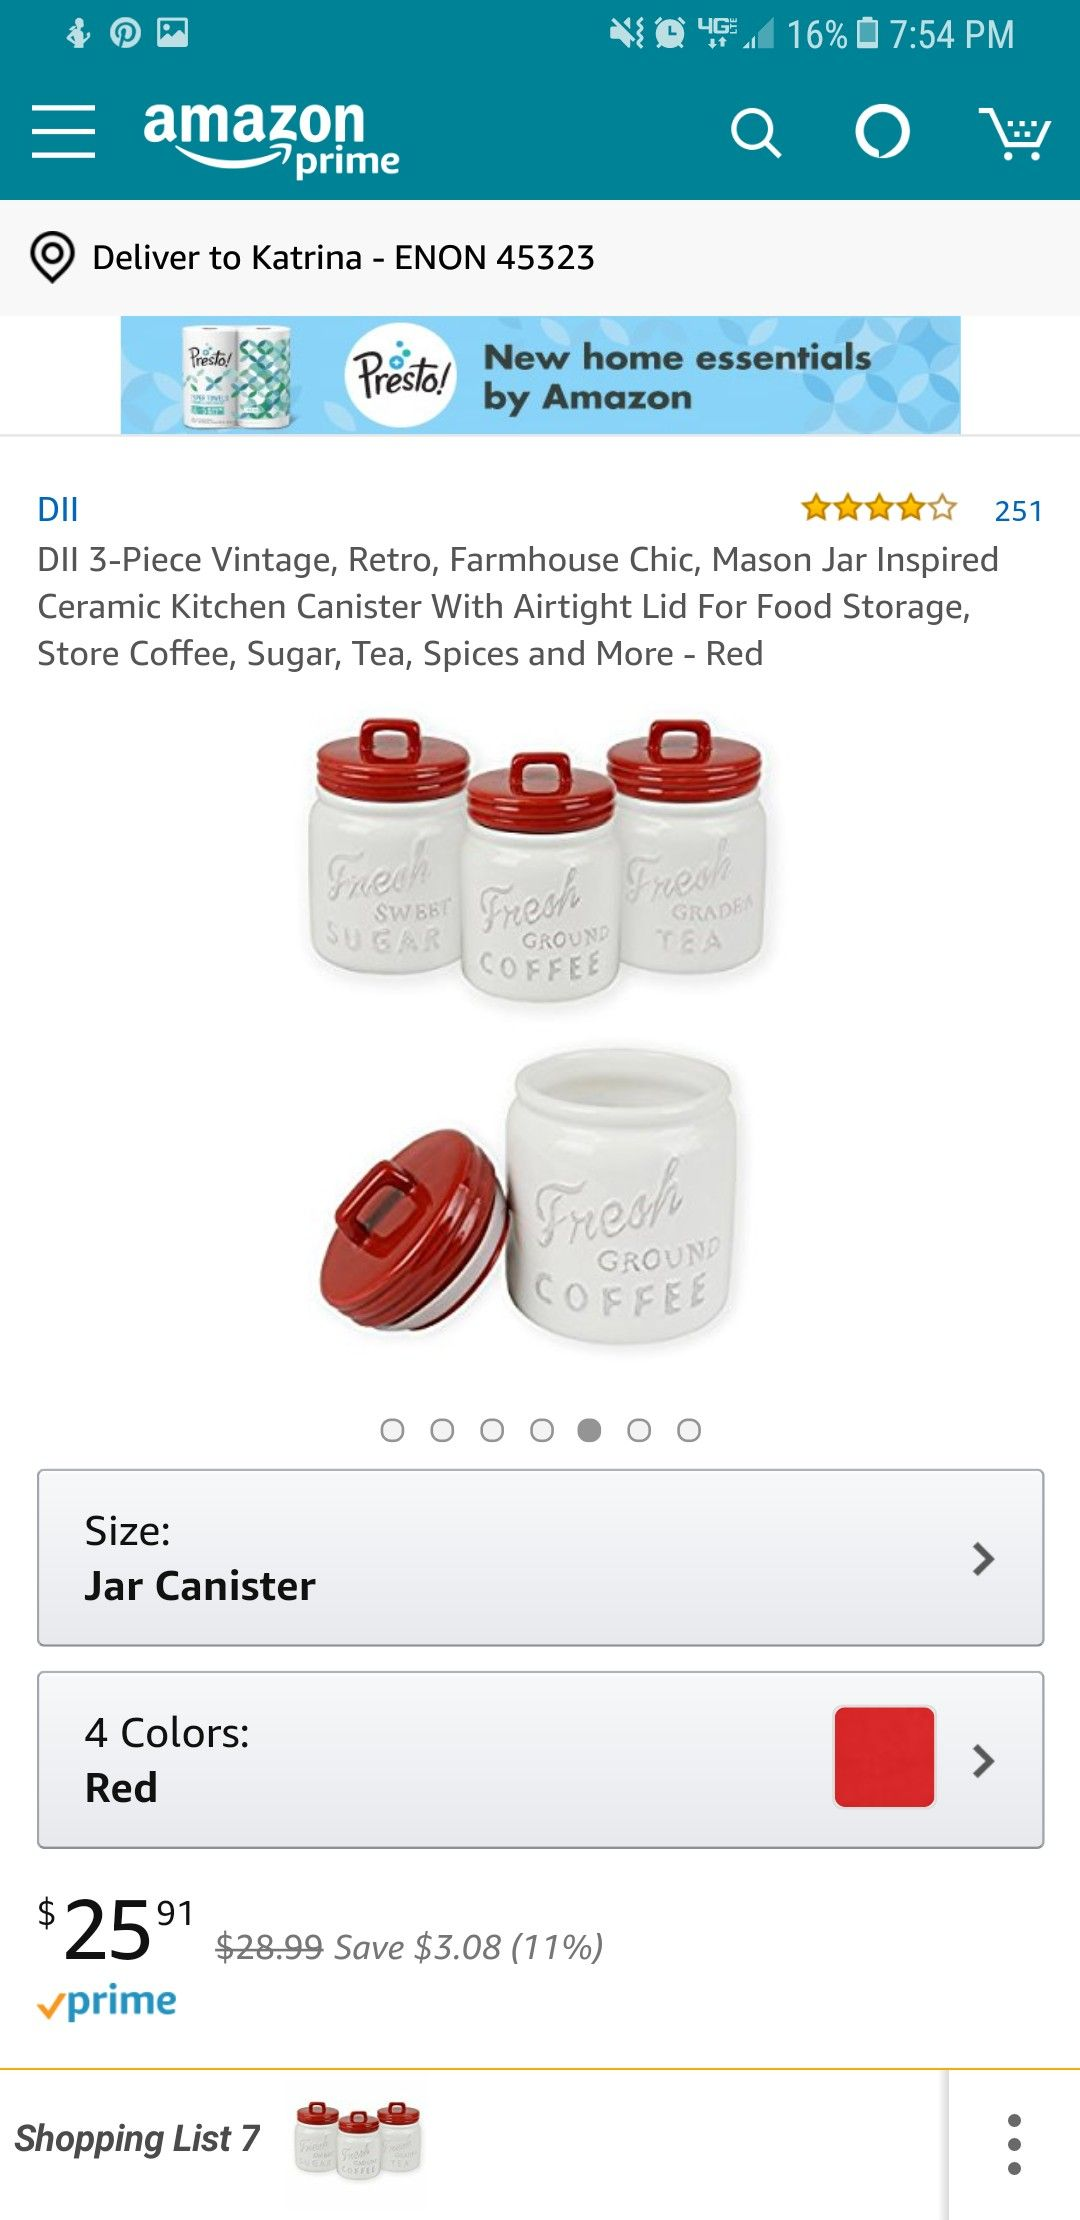 Amazon Kitchen Essentials: Ceramic Kitchen Canisters Image By Katrina Frew On Yellow